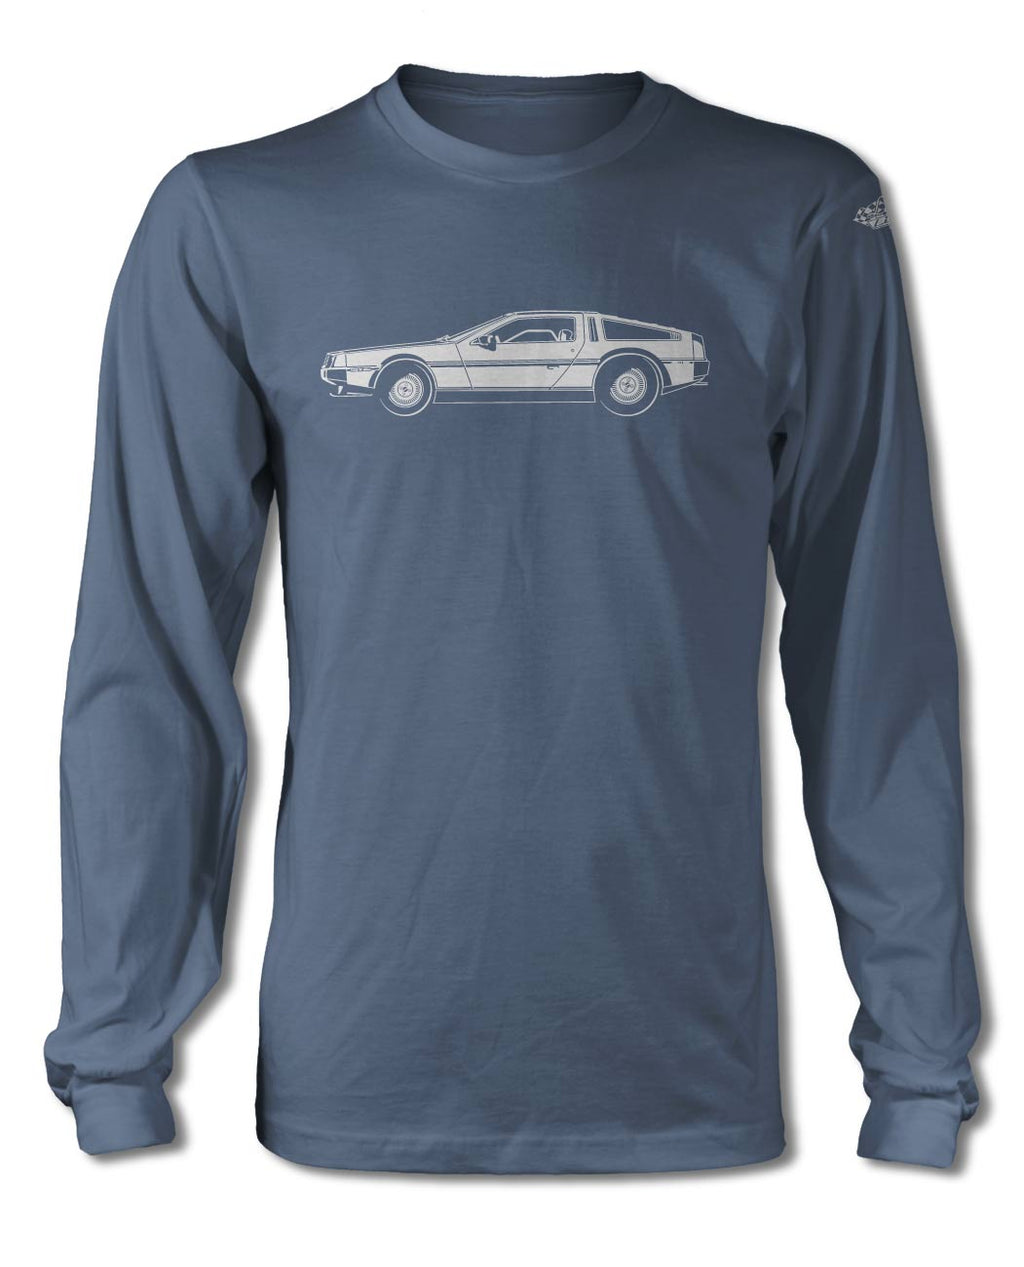 1981 DeLorean DMC-12 Coupe T-Shirt - Long Sleeves - Side View